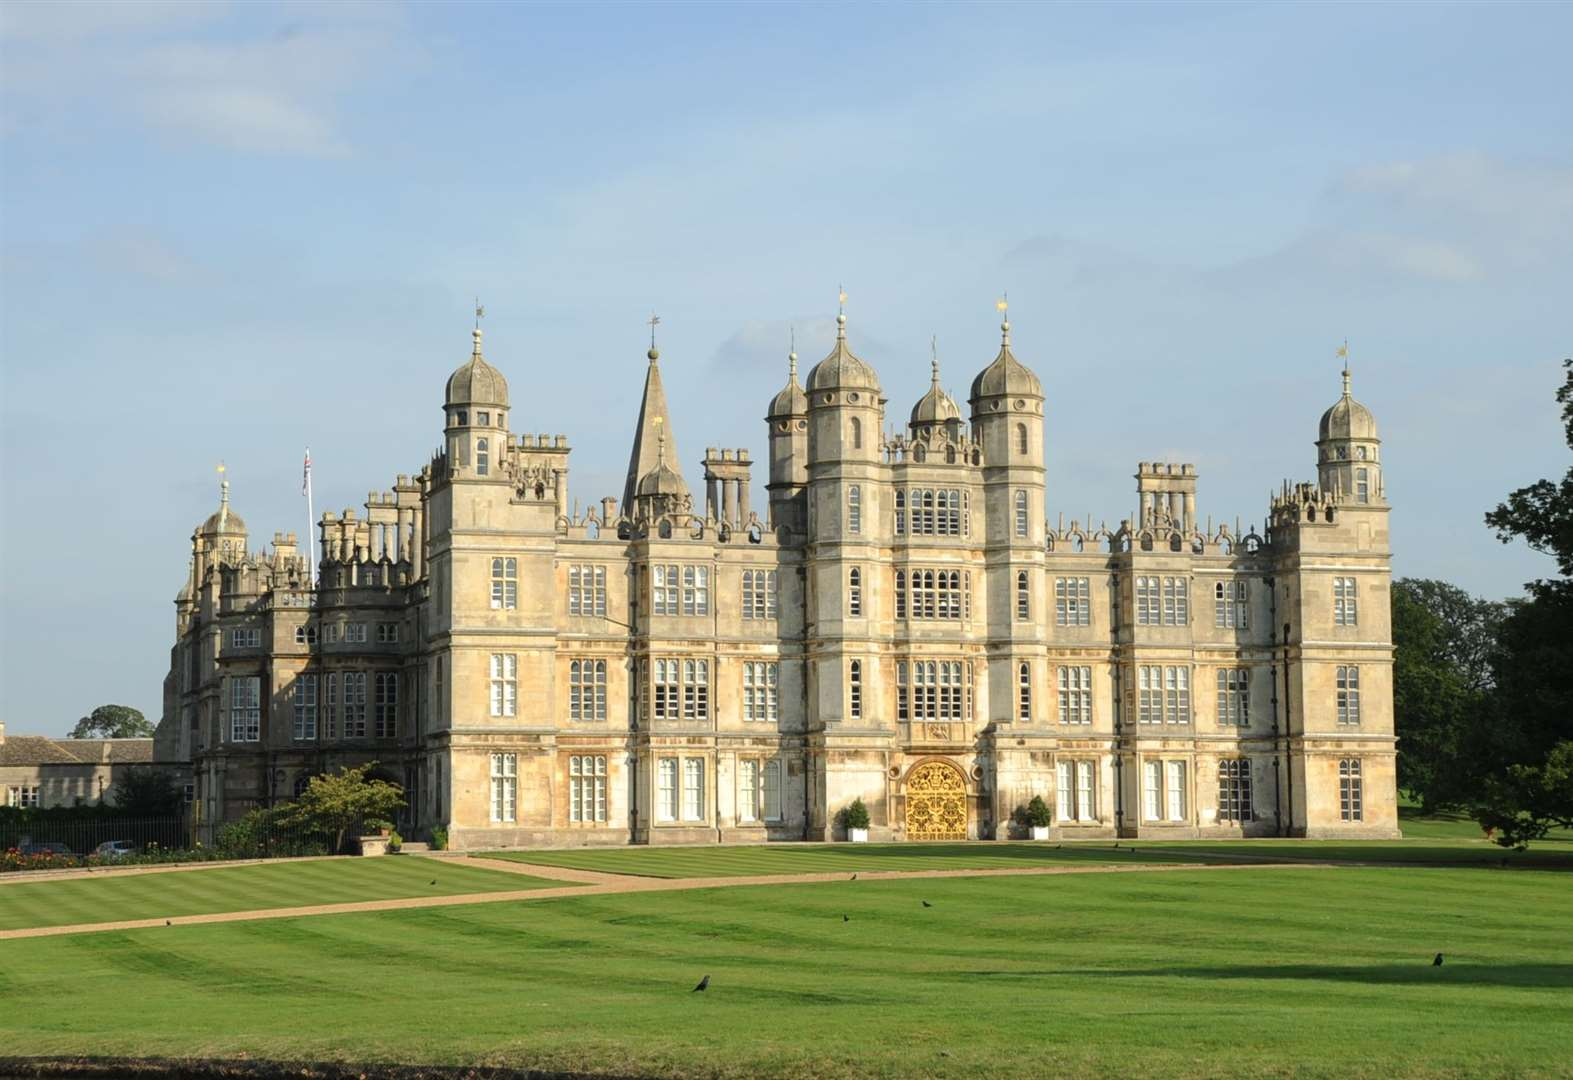 Revealed: what's being filmed at Burghley House